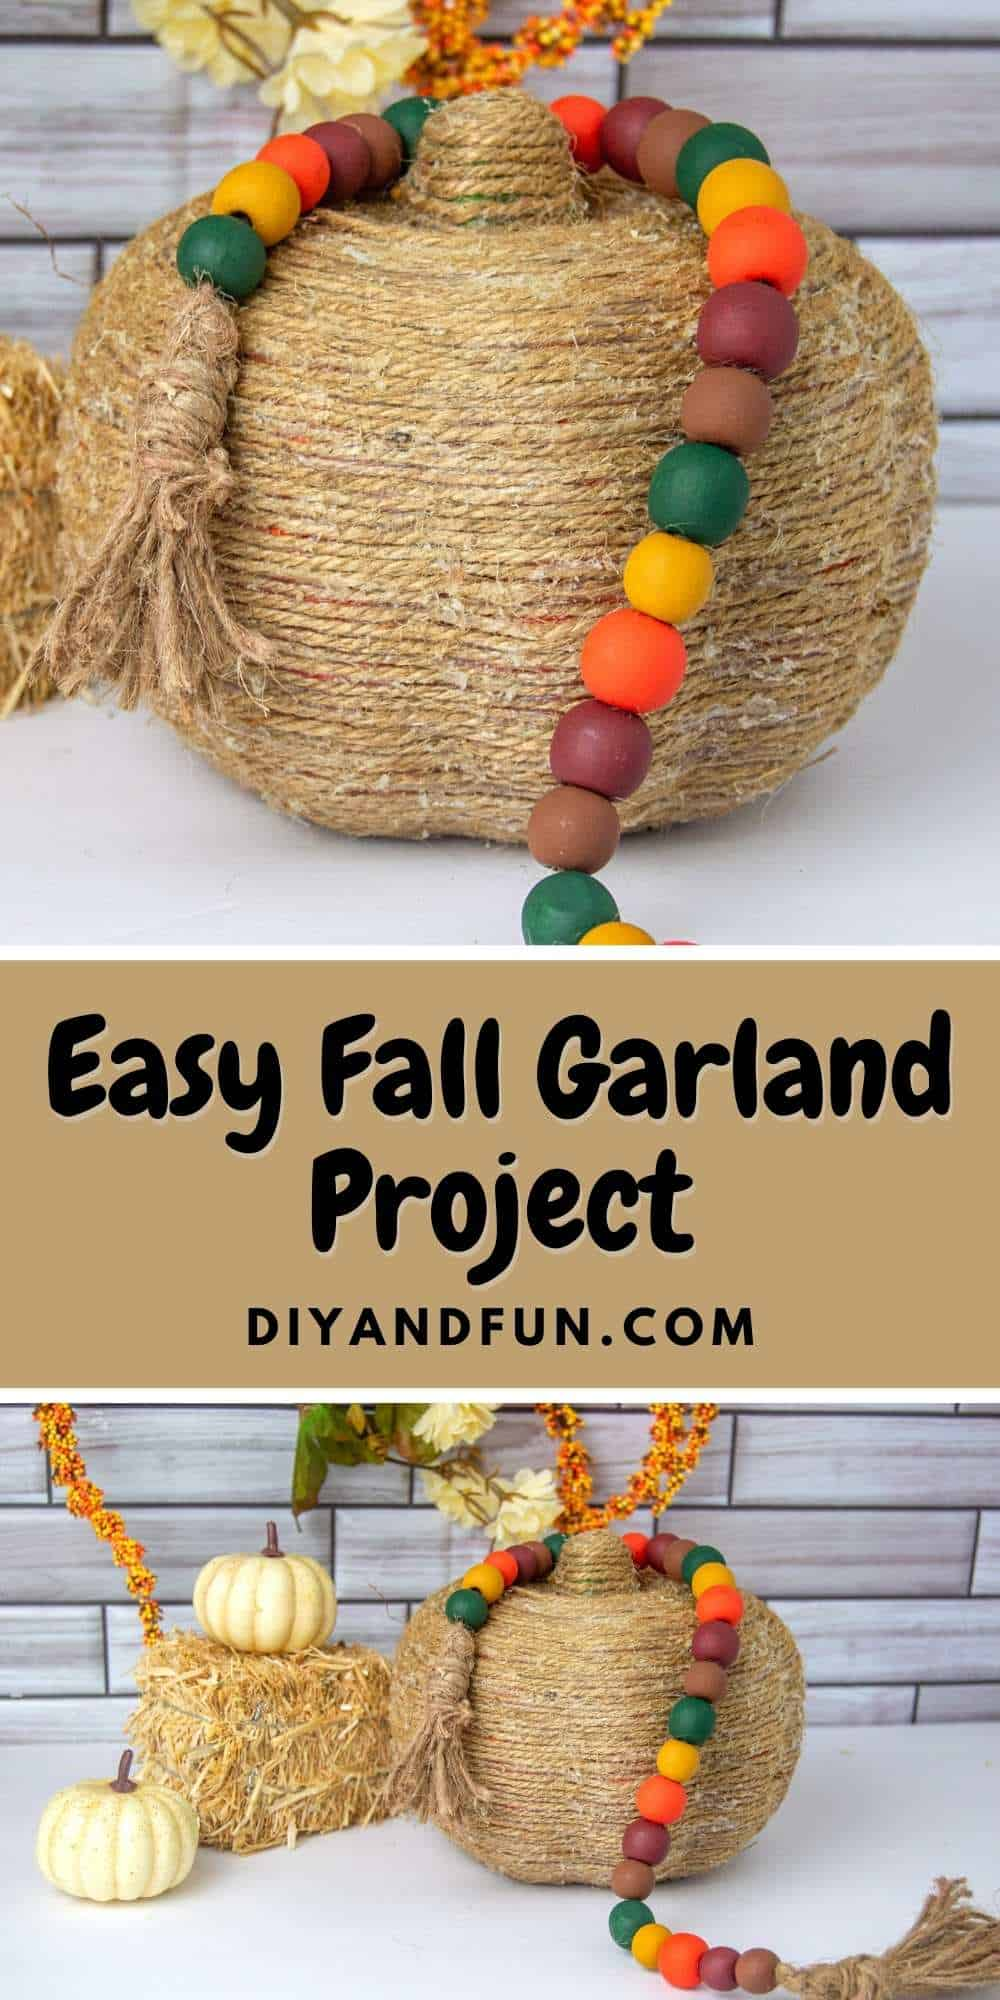 Easy Fall Garland Project